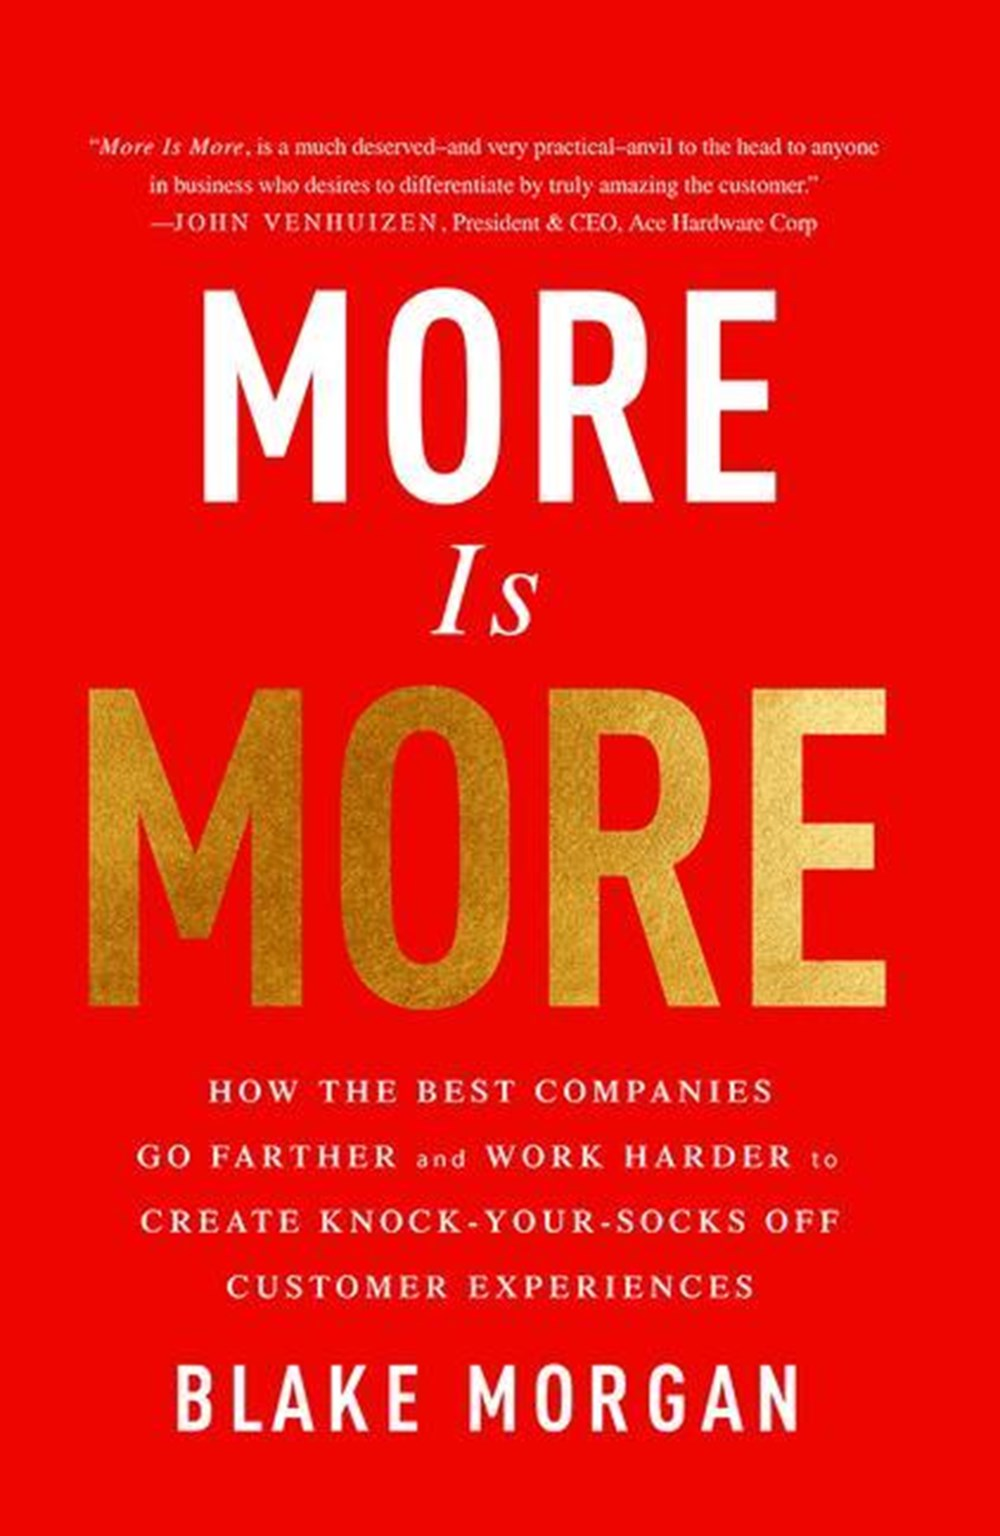 More Is More: How the Best Companies Go Farther and Work Harder to Create Knock-Your-Socks-Off Custo